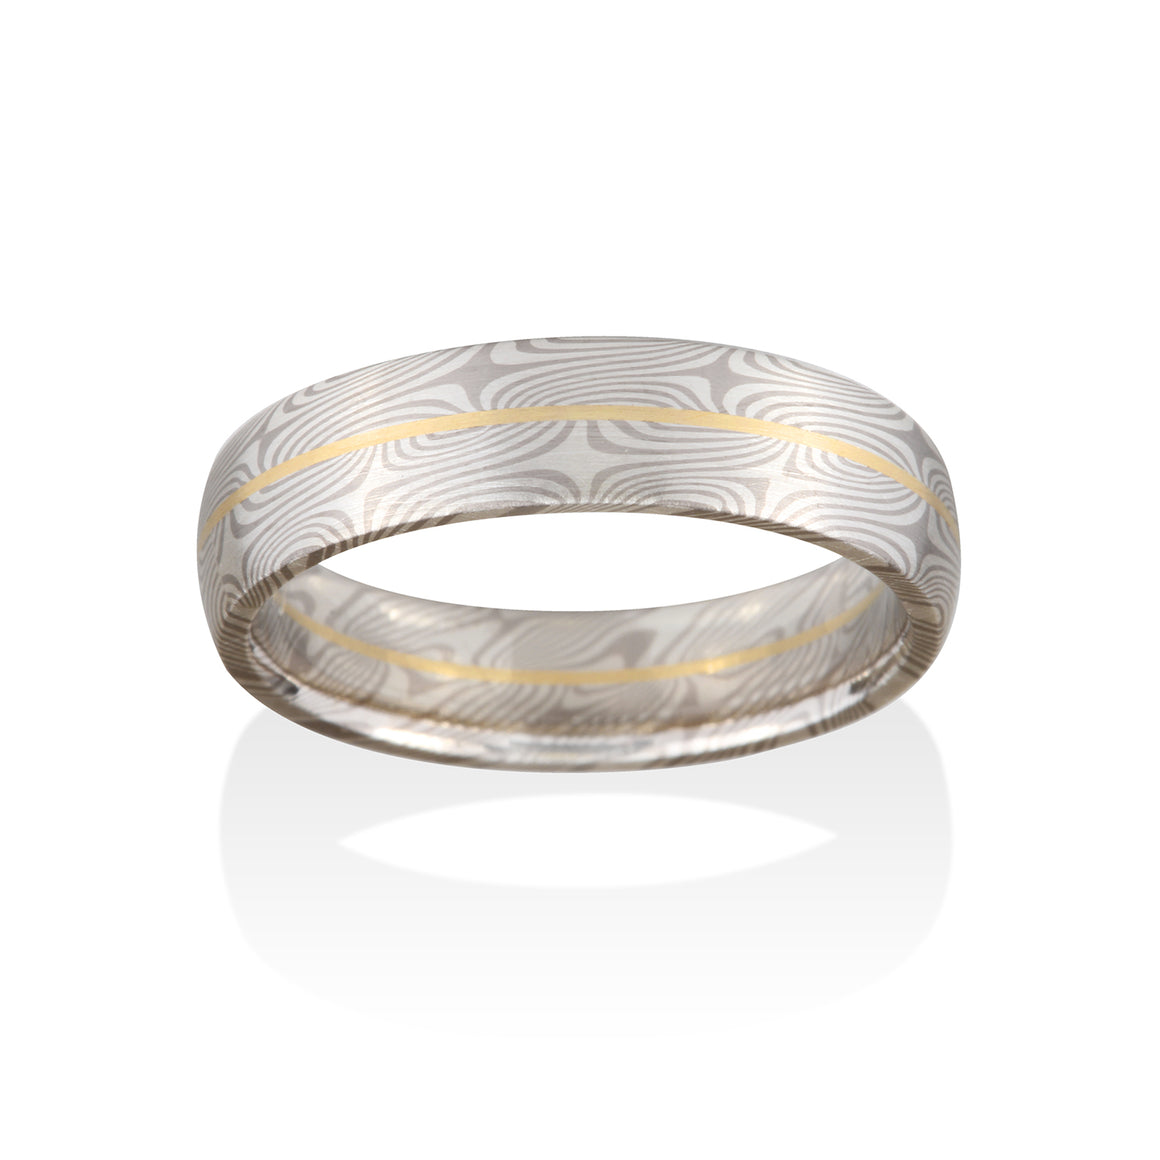 Chris Ploof Spruce Pd500 and Silver with an 18K Yellow Gold Rail Mokume Ring